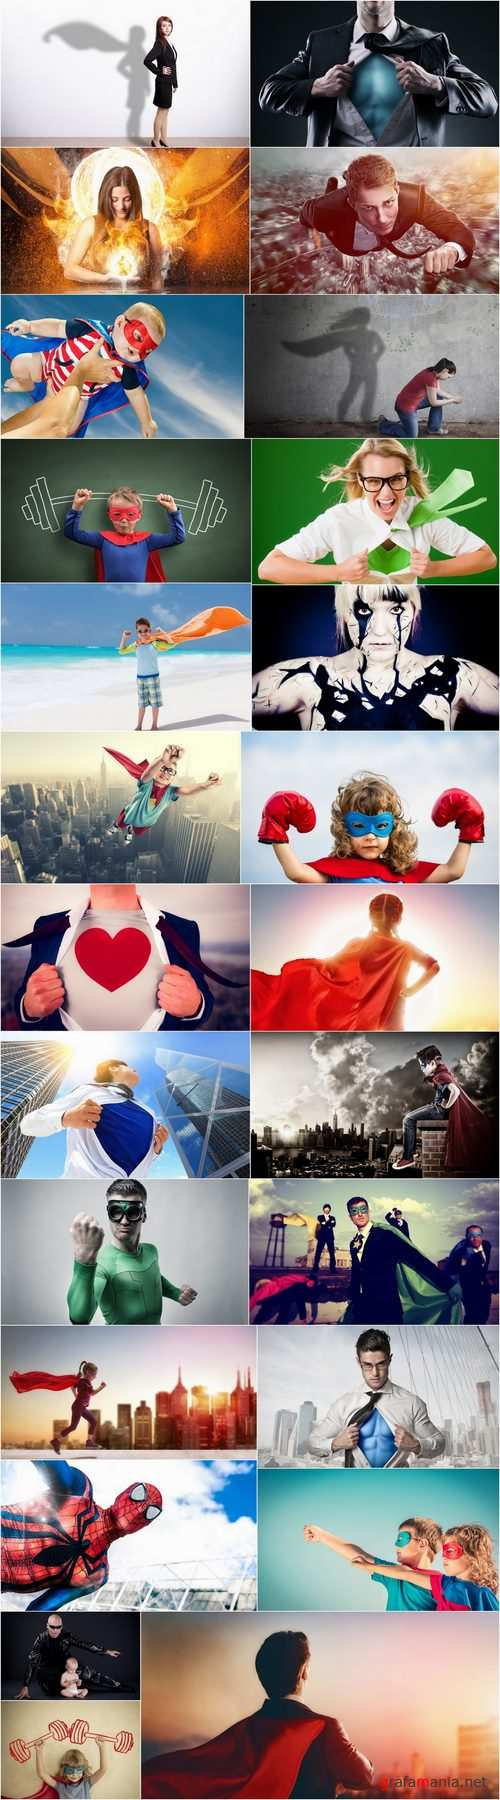 Superhero comic character costume 25 HQ Jpeg